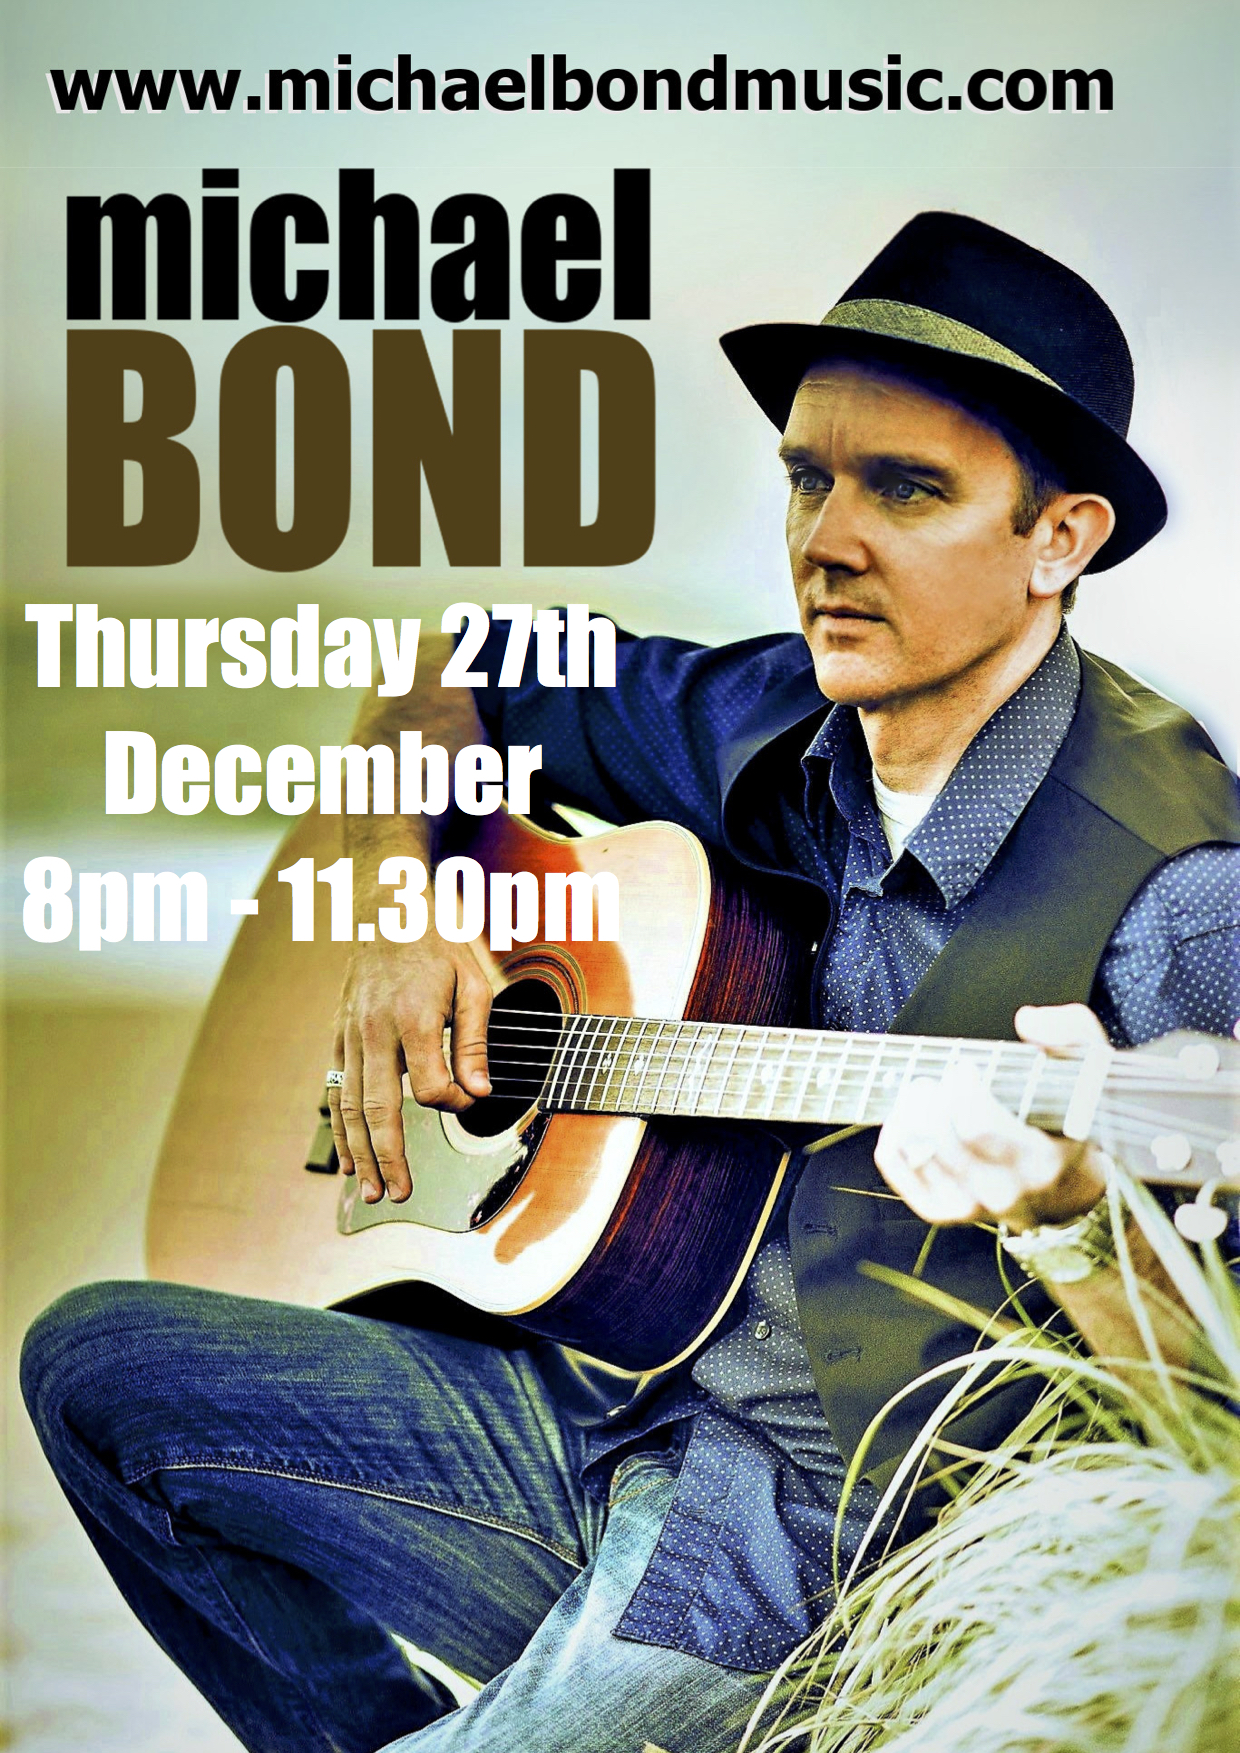 MICHAEL BOND 2018 POSTER 27th dec